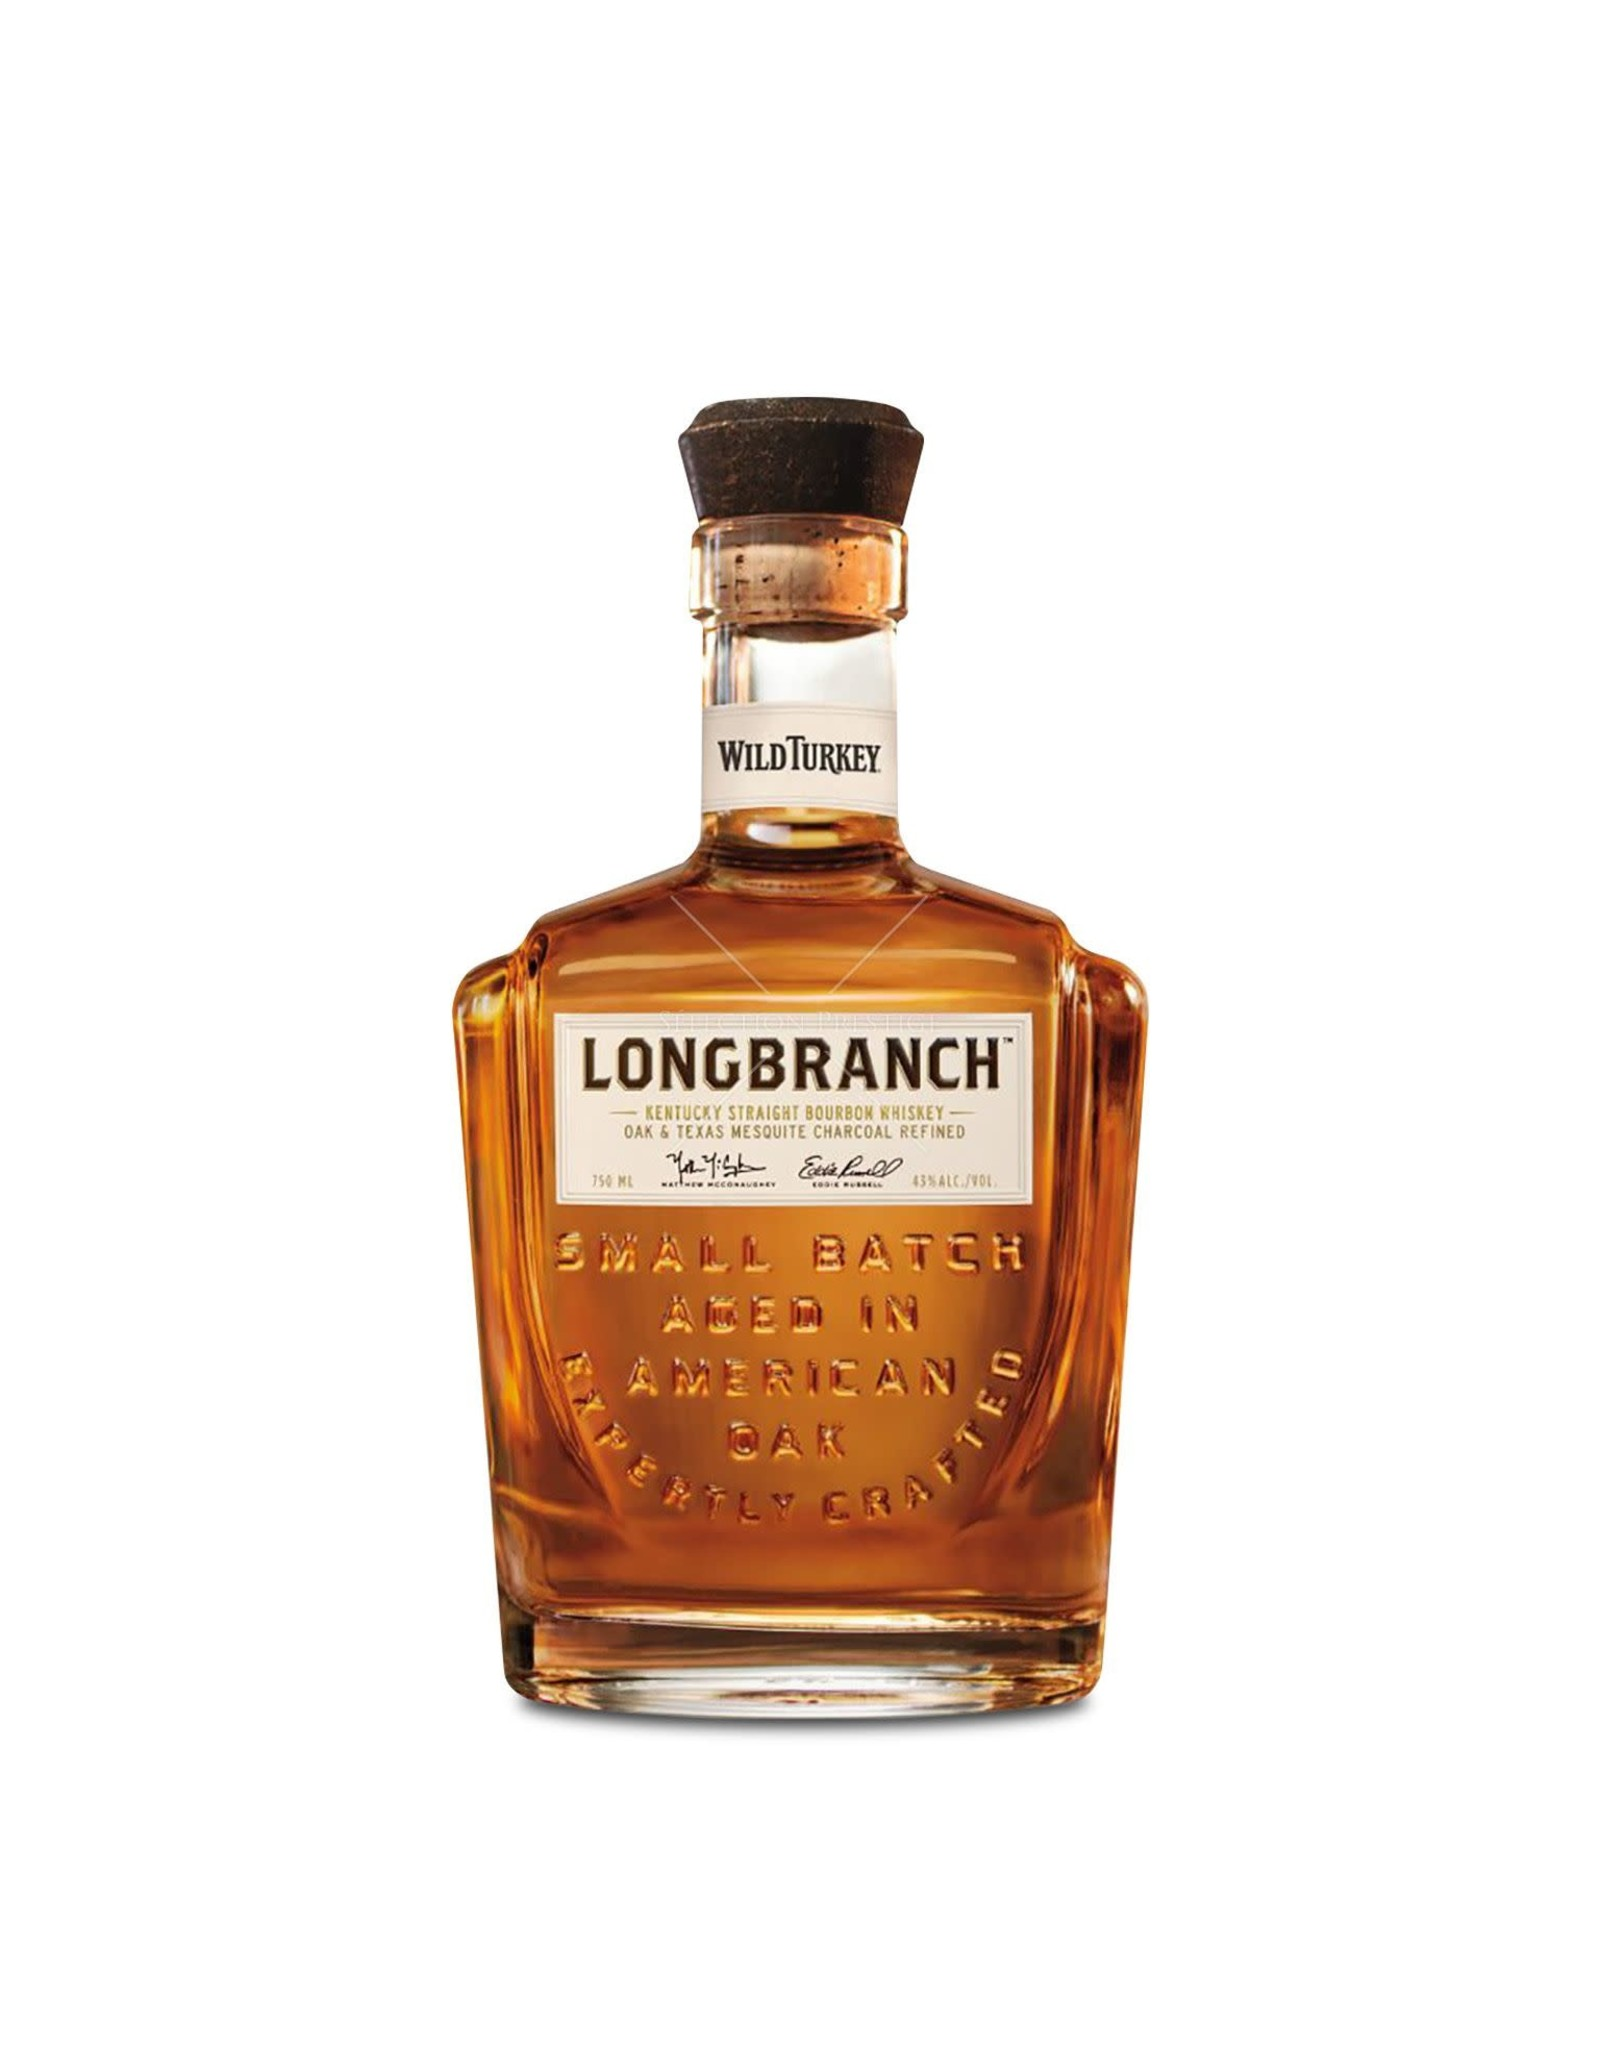 Wild Turkey Bourbon Longbranch 86